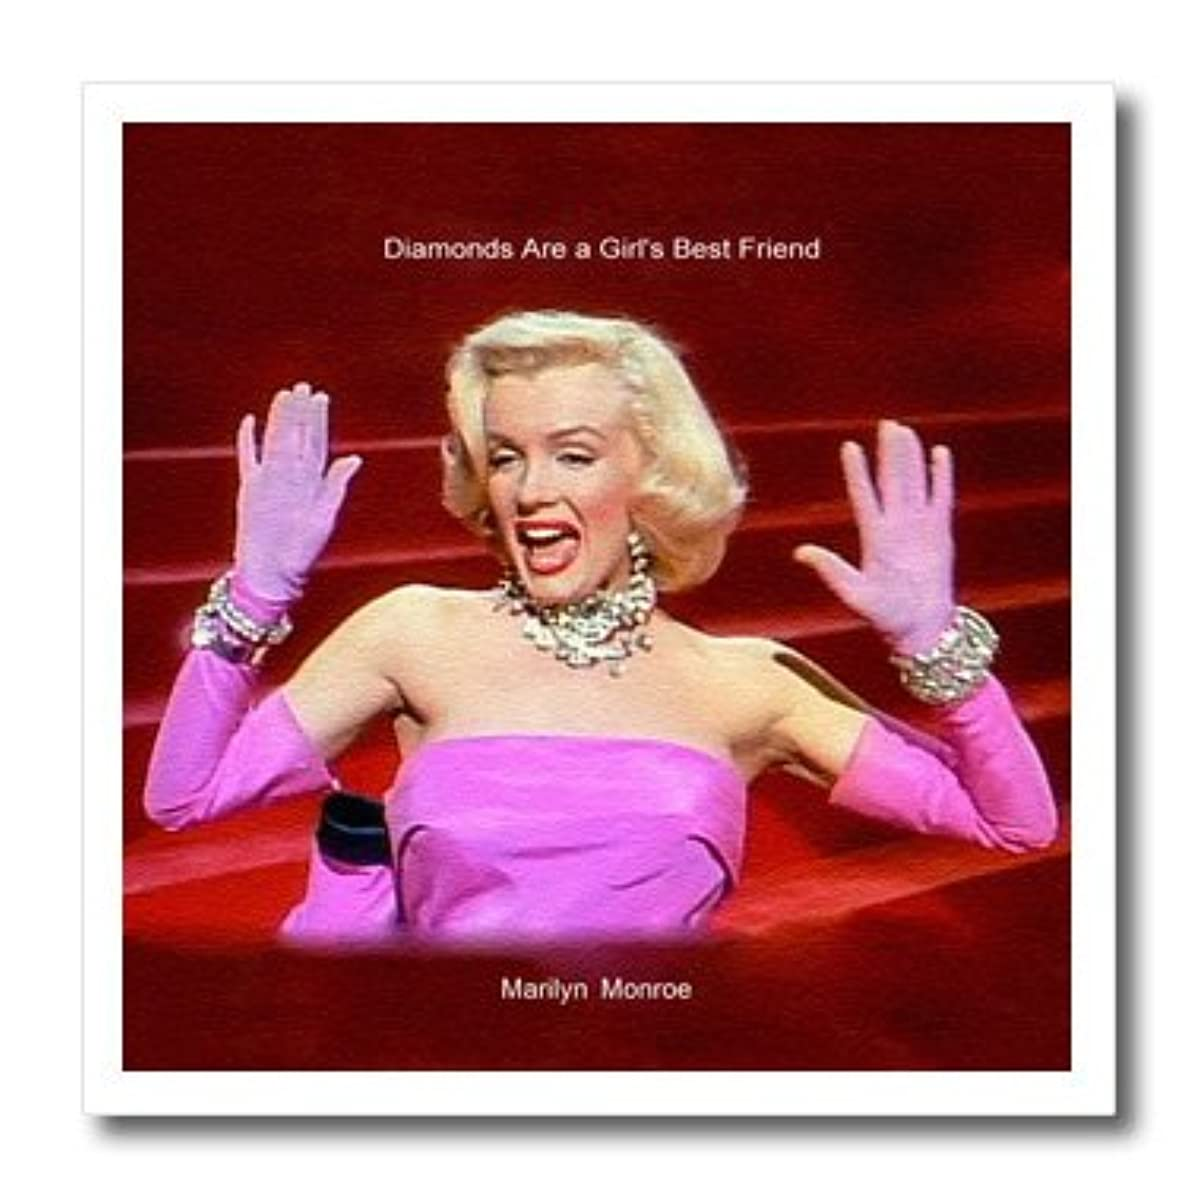 3dRose ht_107176_1 Marilyn Monroe Singing Diamonds are a Girls Best Friend 'Textured'-Iron on Heat Transfer for White Material, 8 by 8-Inch